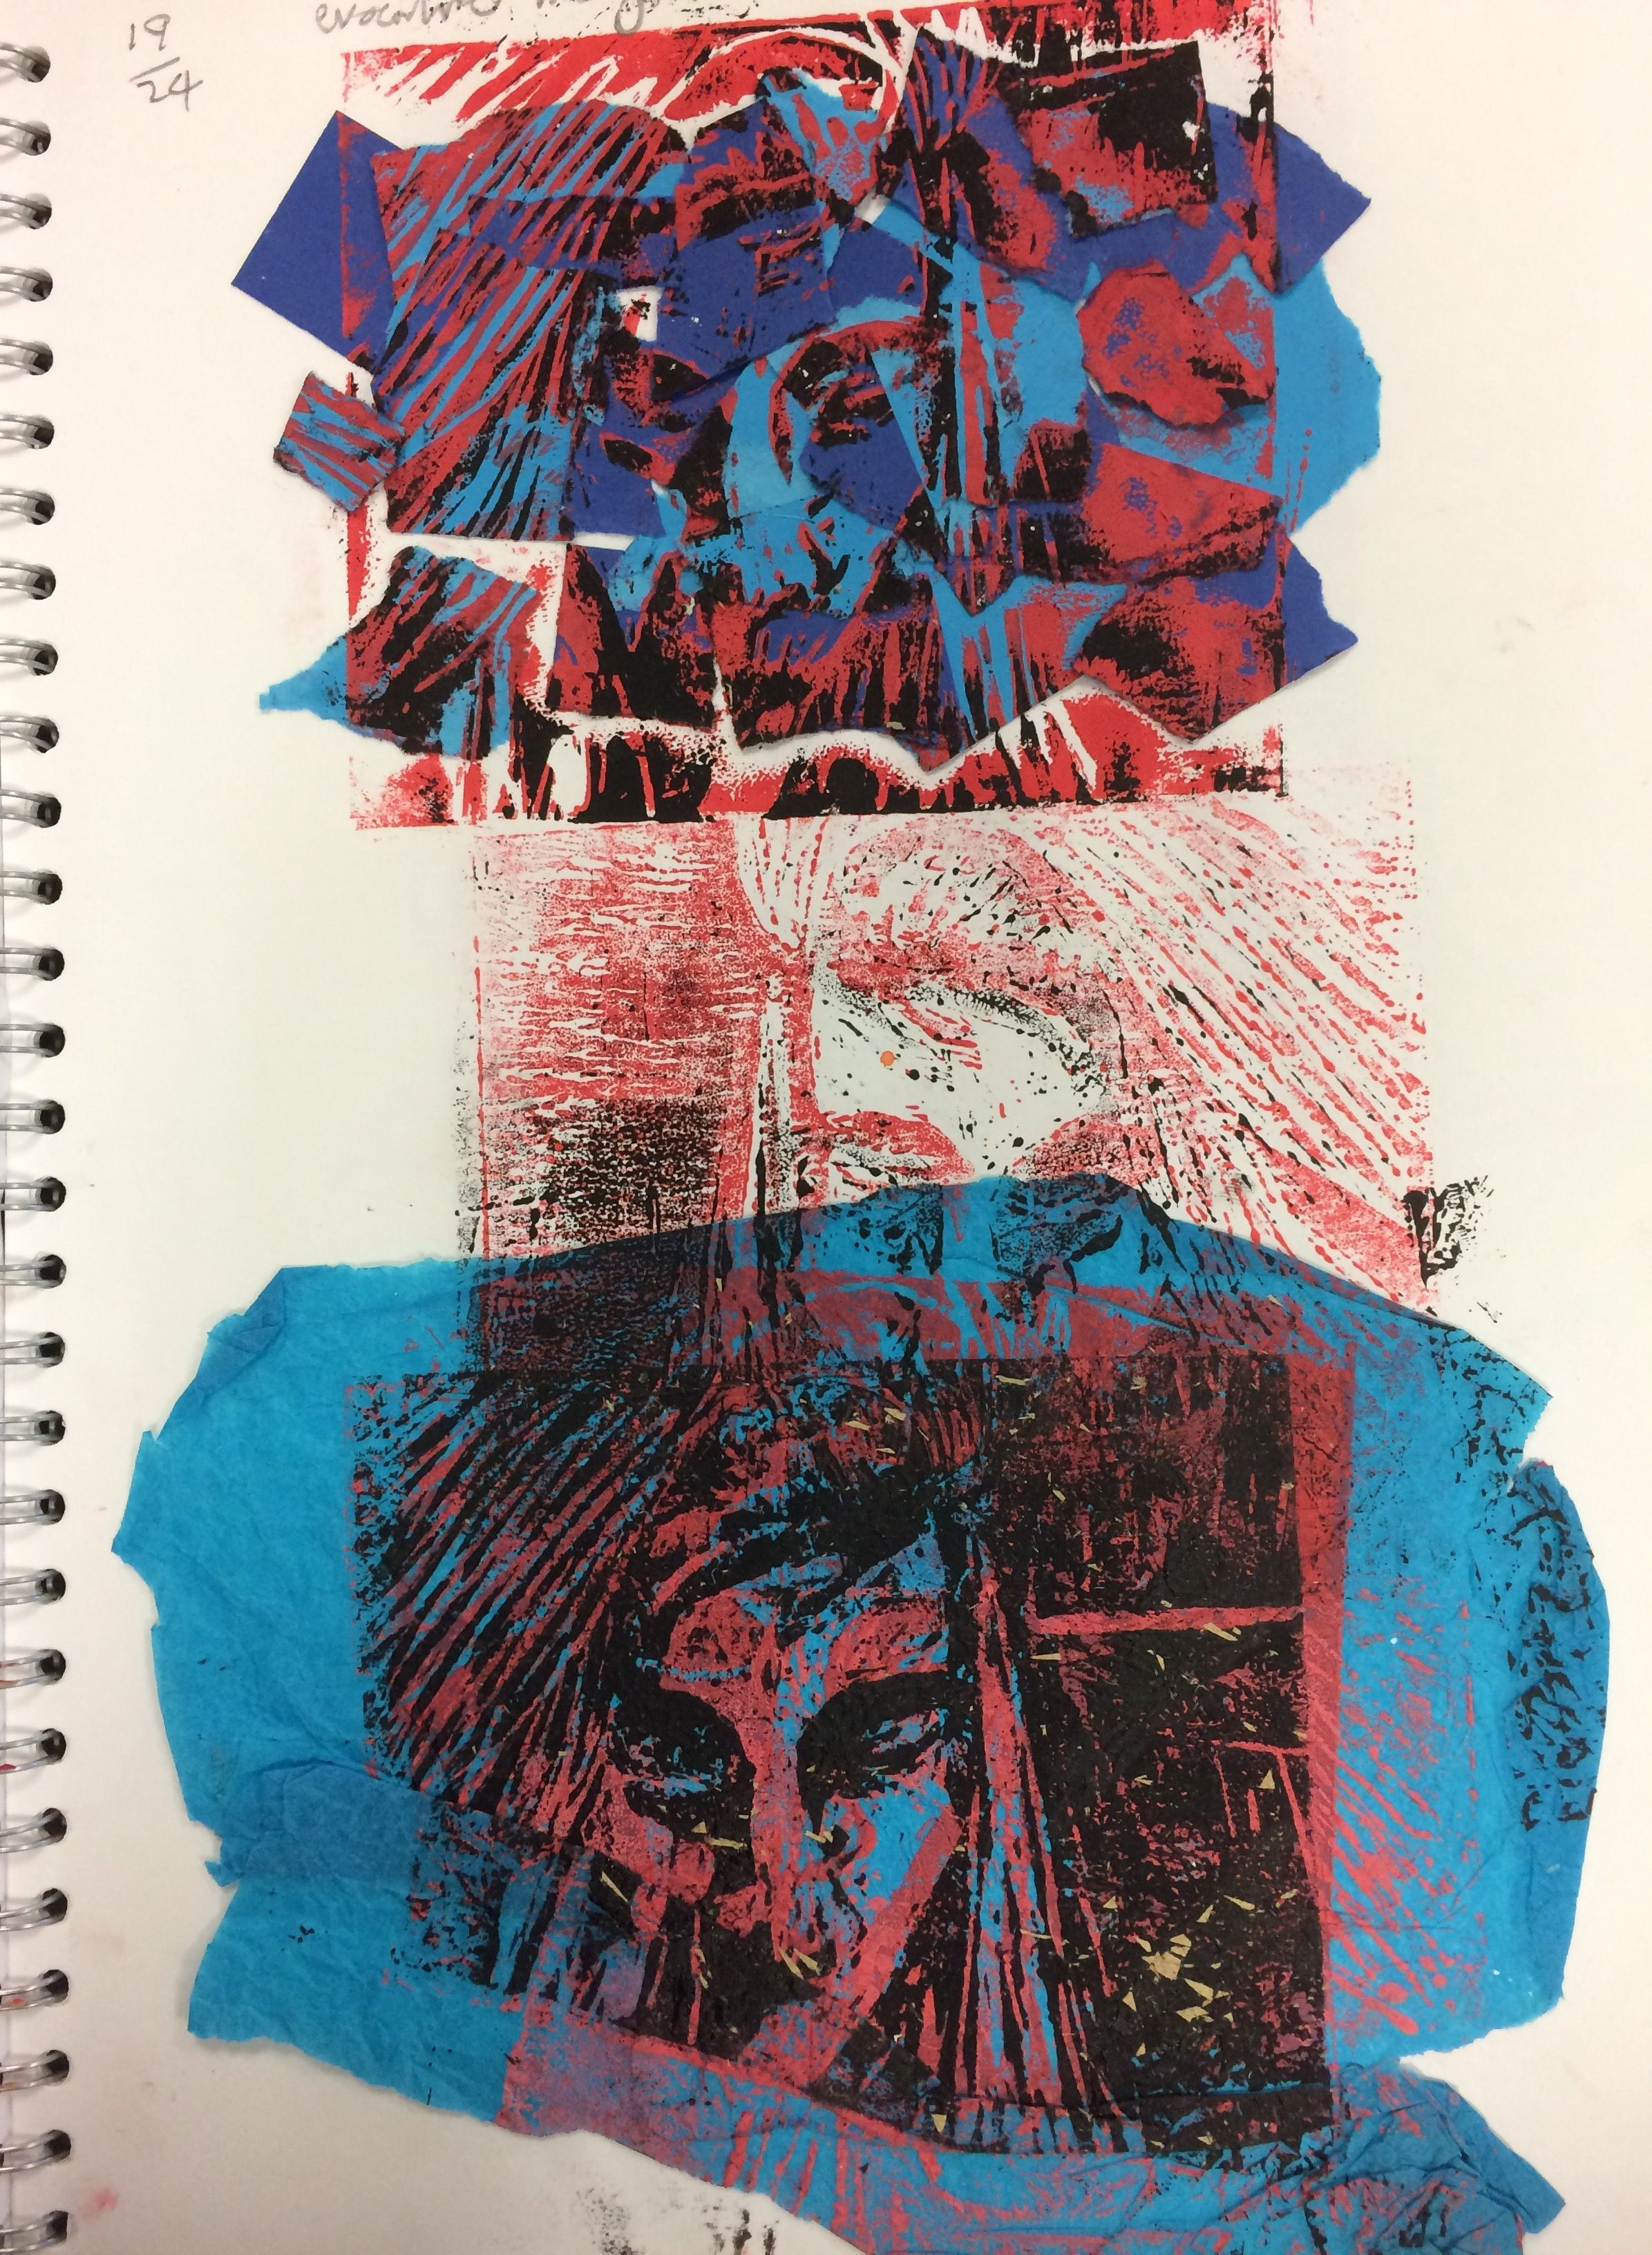 Isobel, Lino printing experience for the GCSE Portfolio Project ...